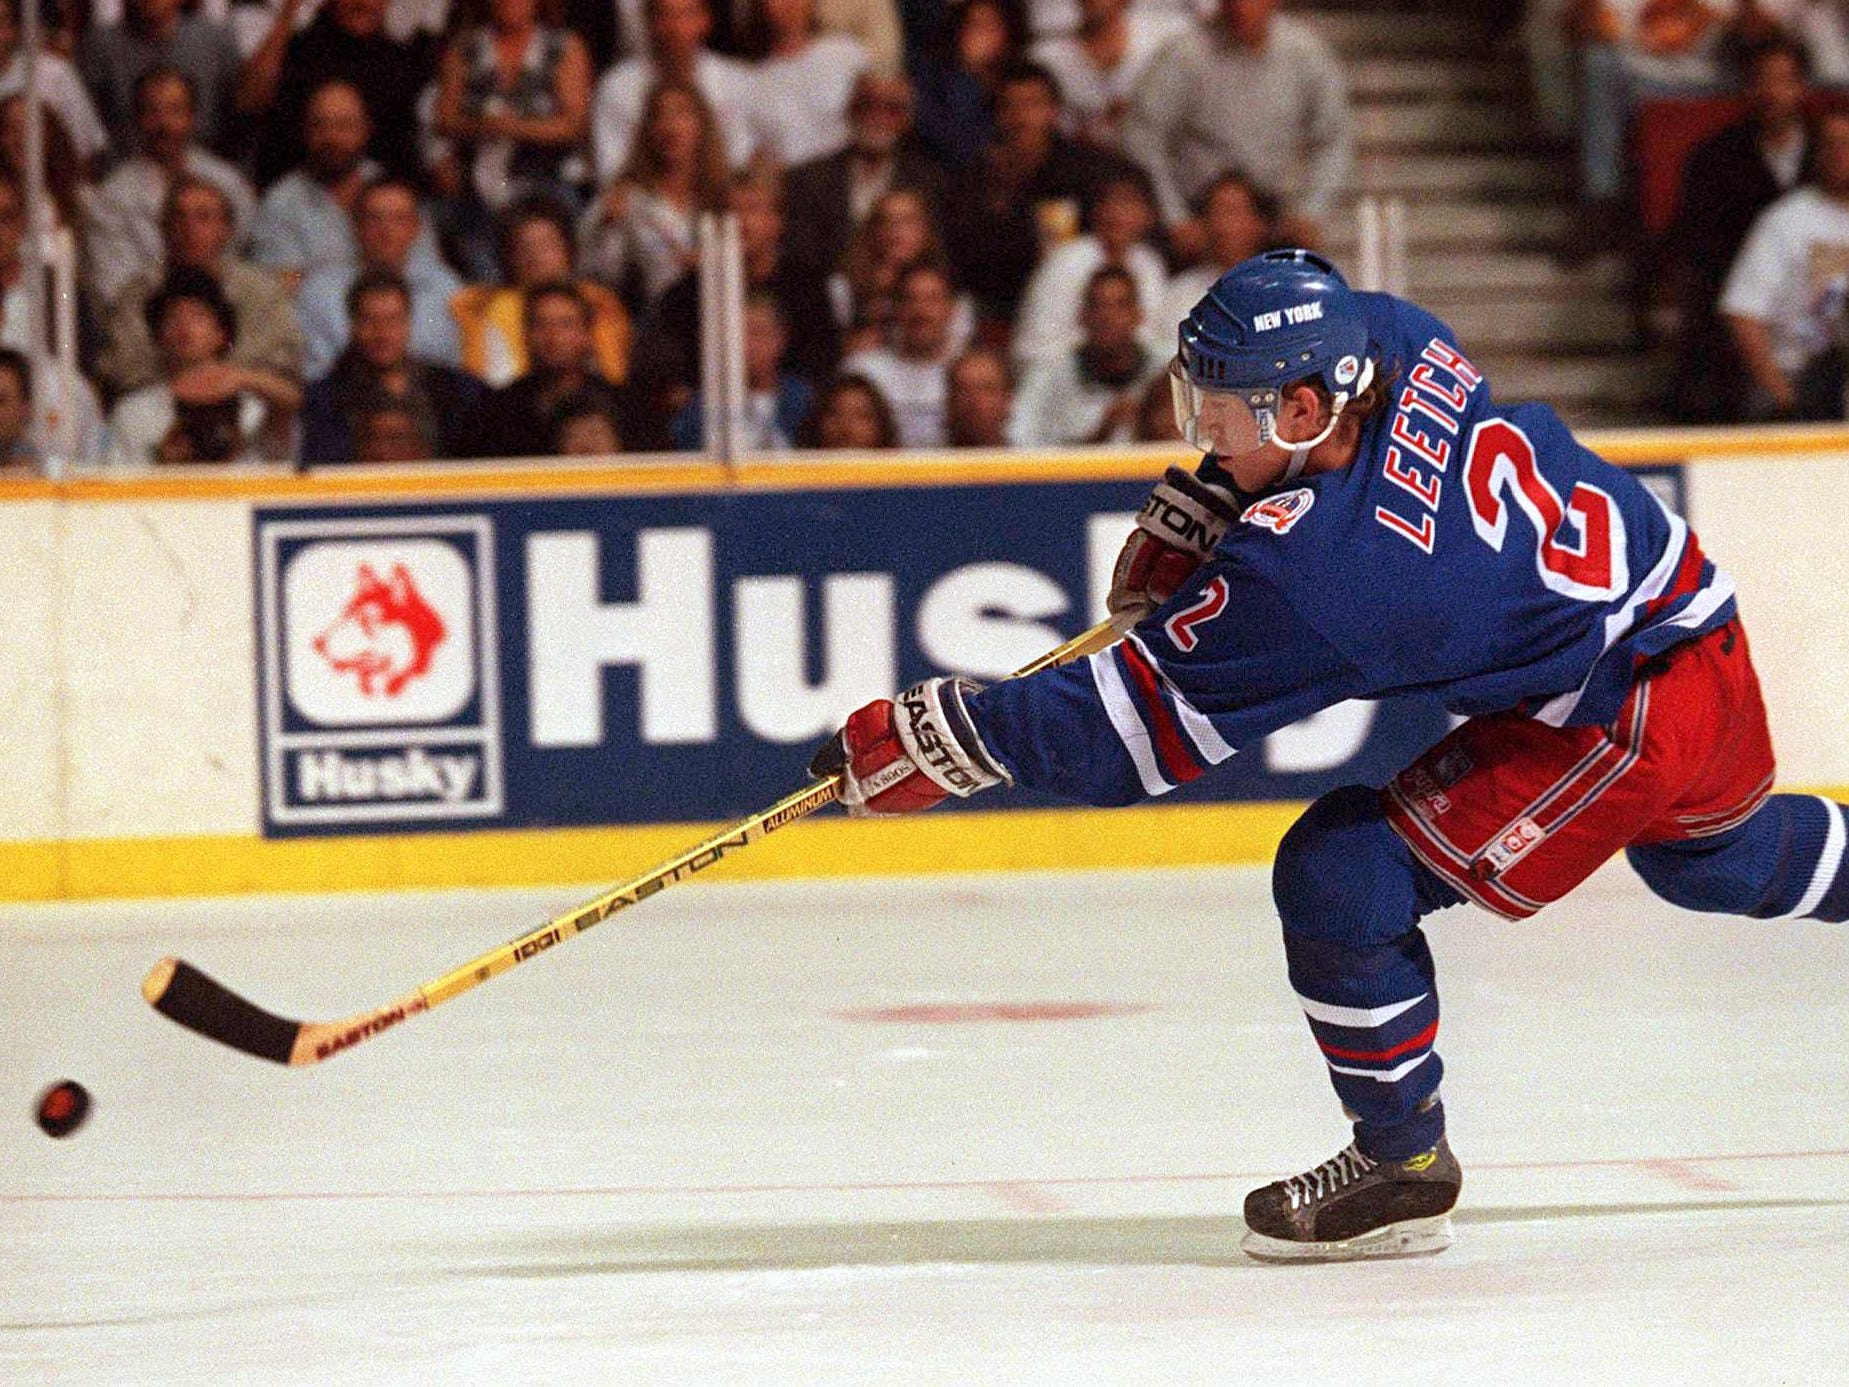 7 JUN 1994: RANGER''S DEFENSEMAN BRIAN LEETCH LAUNCHES A SHOT ON A BREAKAWAY IN THE FIRST PERIOD OF GAME FOUR OF THE STANLEY CUP FINALS AT THE PACIFIC COLISEUM IN VANCOUVER, BRITISH COLUMBIA. LEETCH''S ATTEMPT WAS STOPPED BY CANUCKS GOALTENDER KIRK MCLEAN.